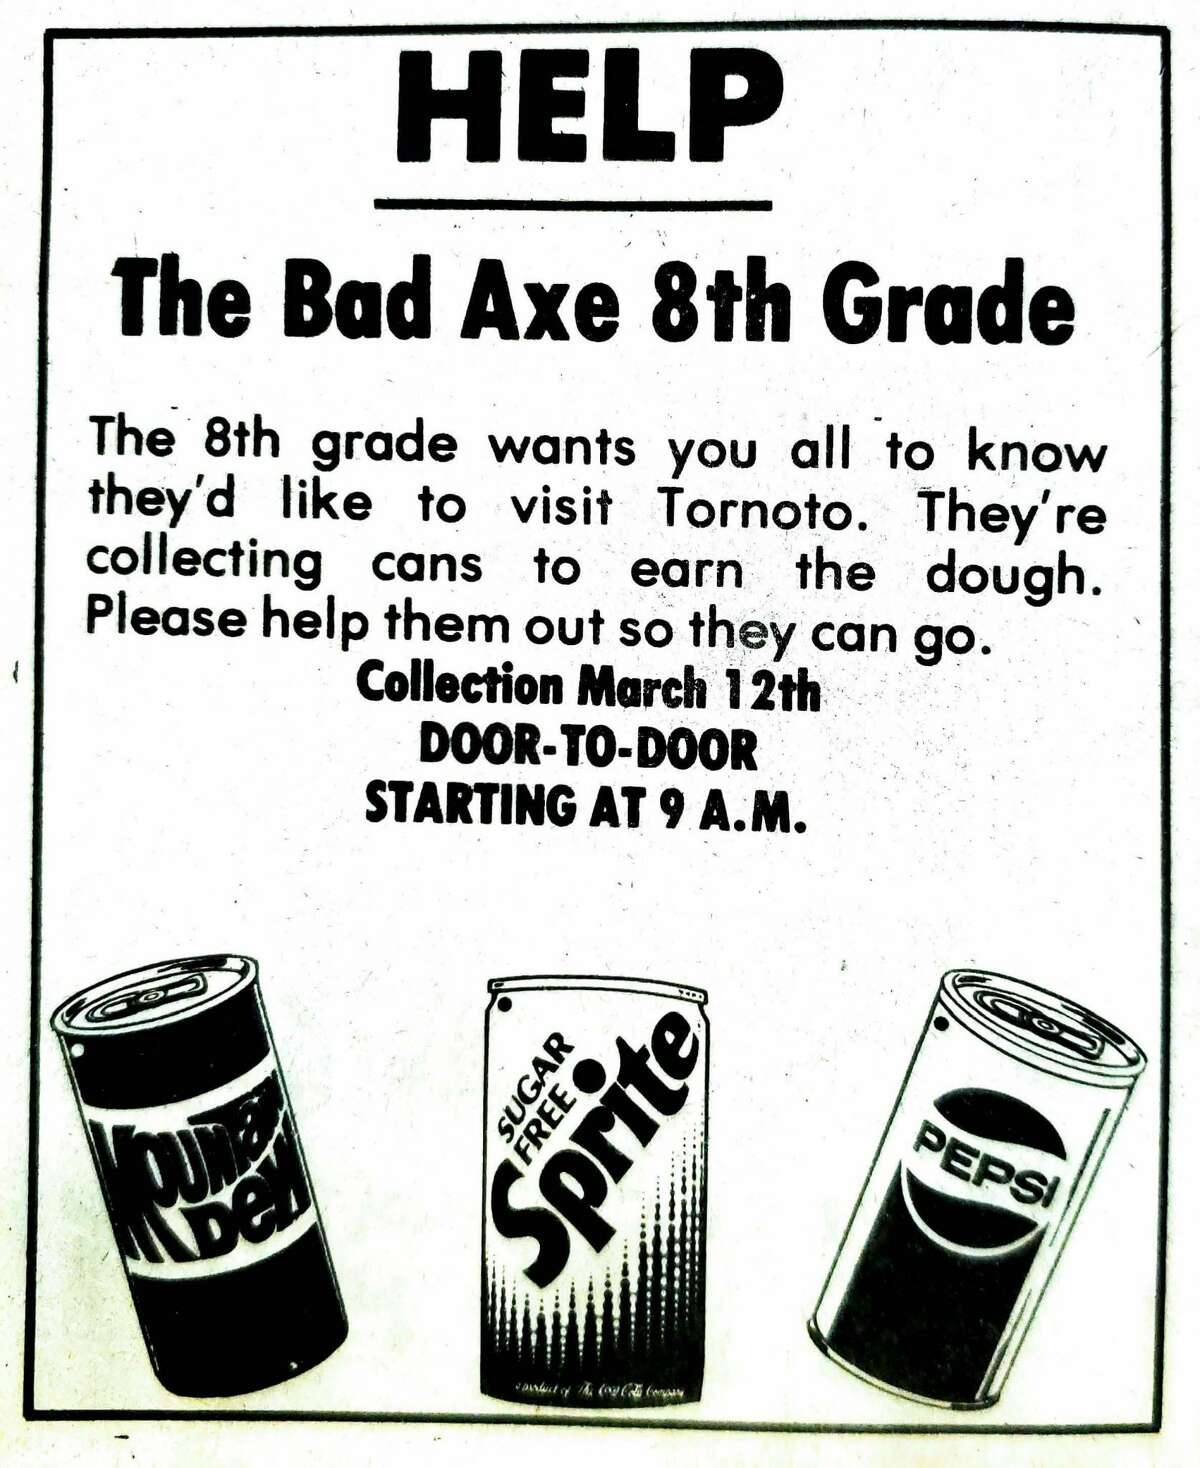 Pop cans for fundraising isn't a new concept, but check out these retro logos.